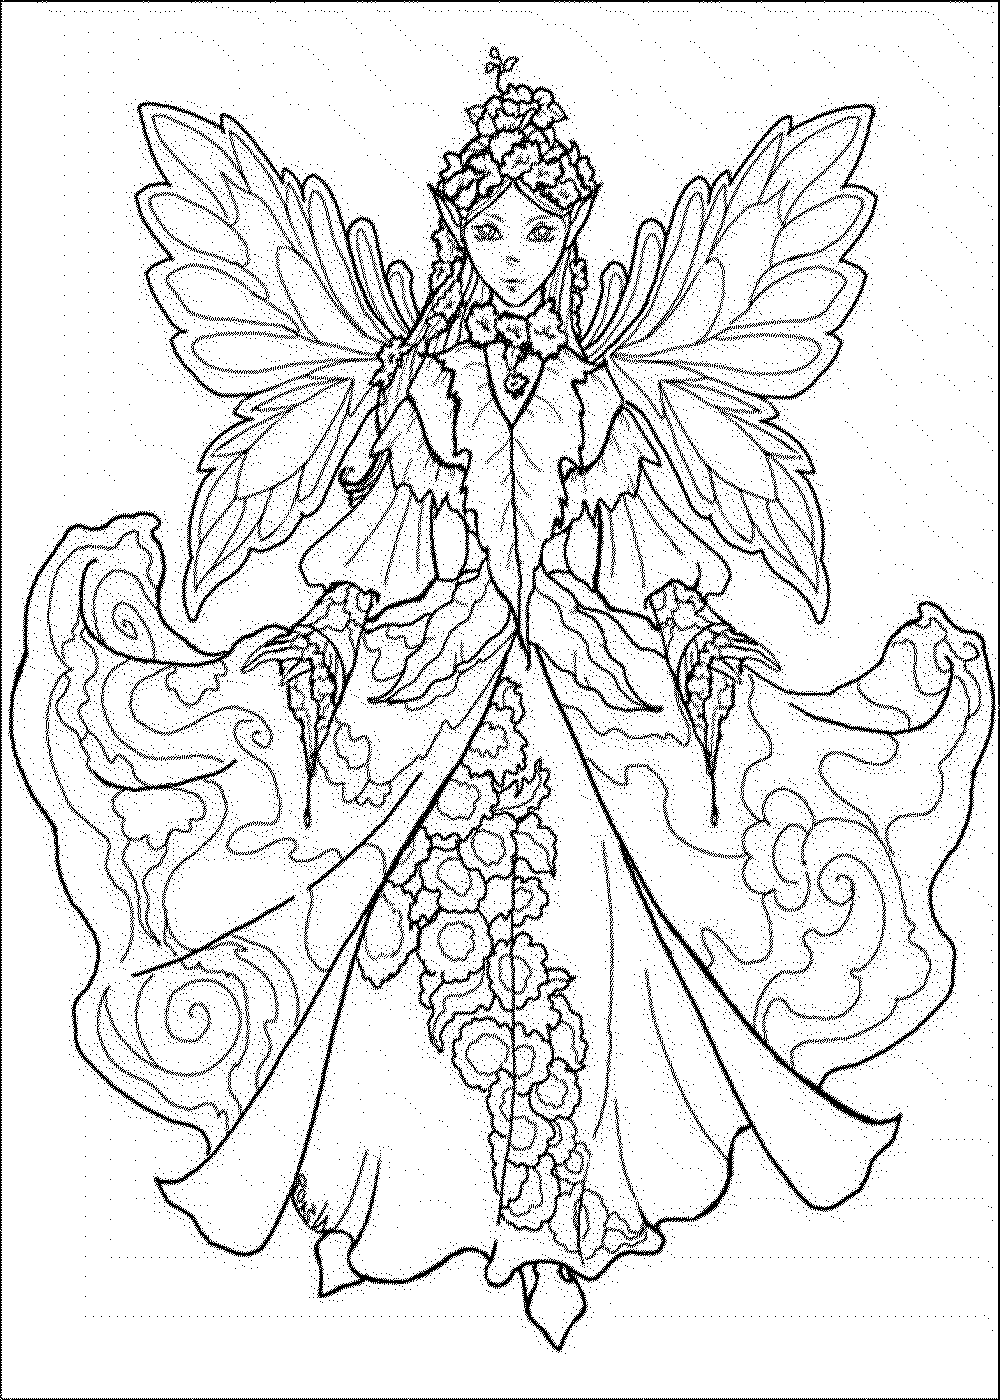 awesome coloring pictures lock screen coloring free coloring pages for teens on awesome coloring pictures